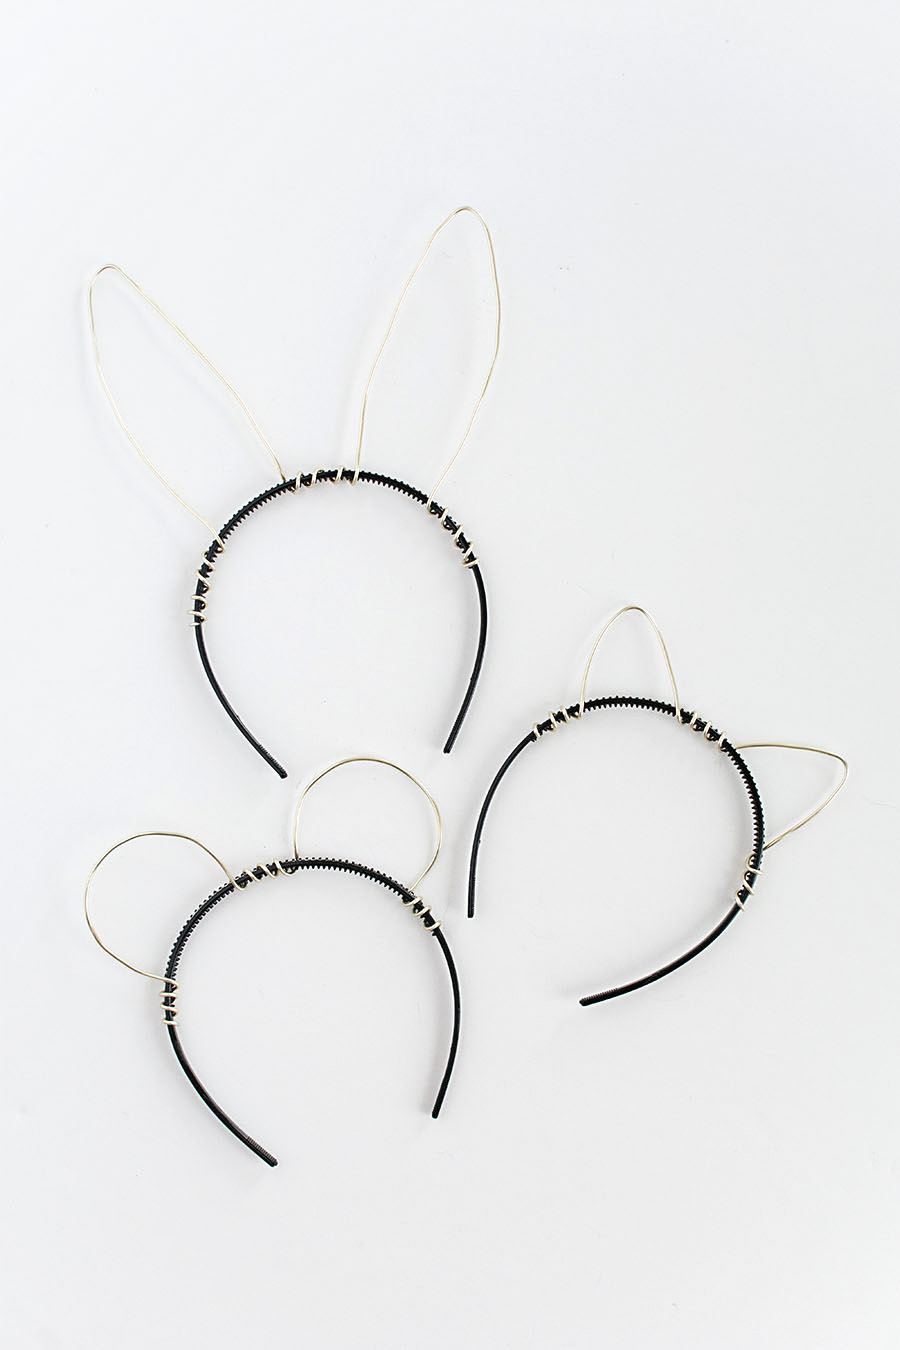 Gold wire animal ears DIY-2